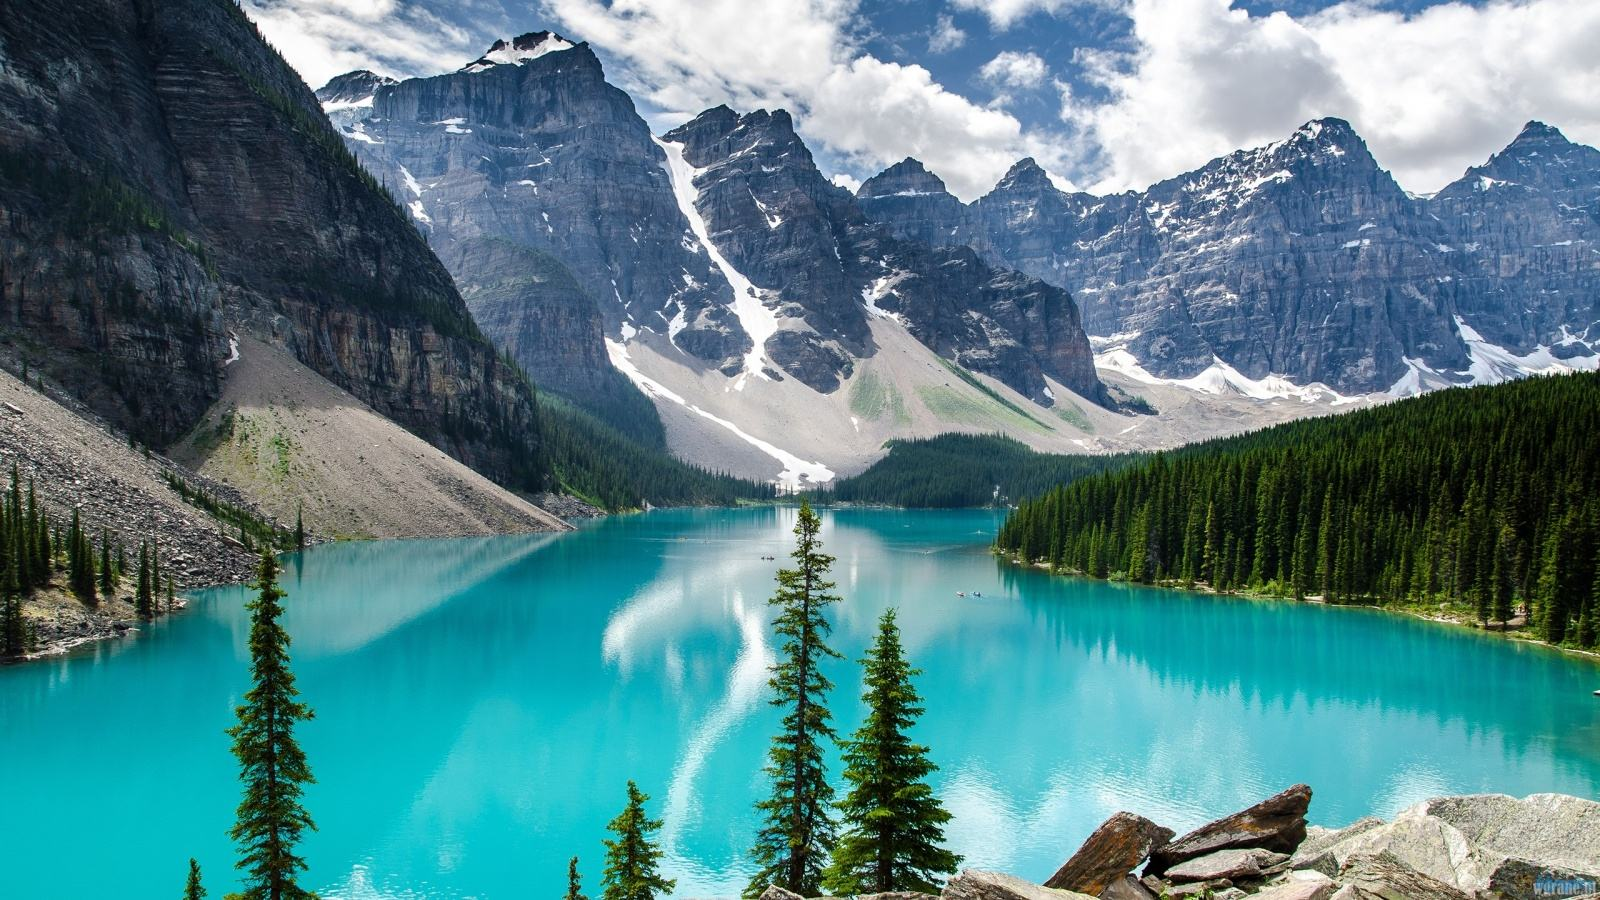 canada 178496 related tags moraine lake canada 1600x900 jpg related 1600x900